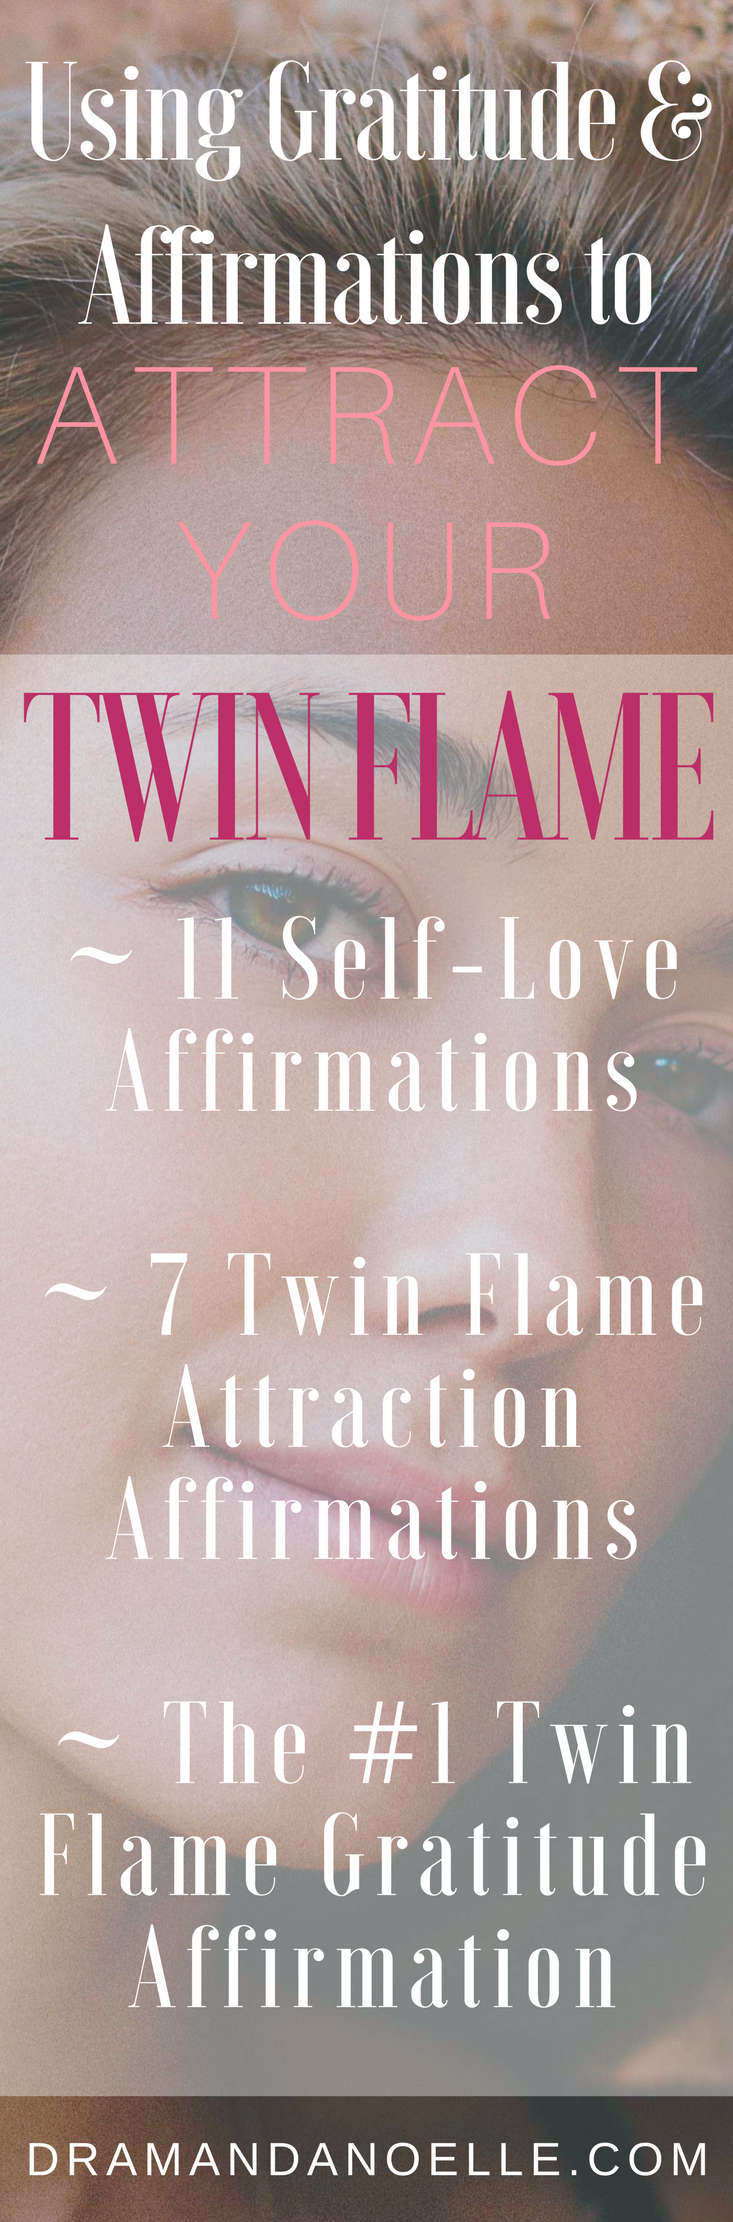 Using Gratitude and Affirmations to Attract Your Twin Flame